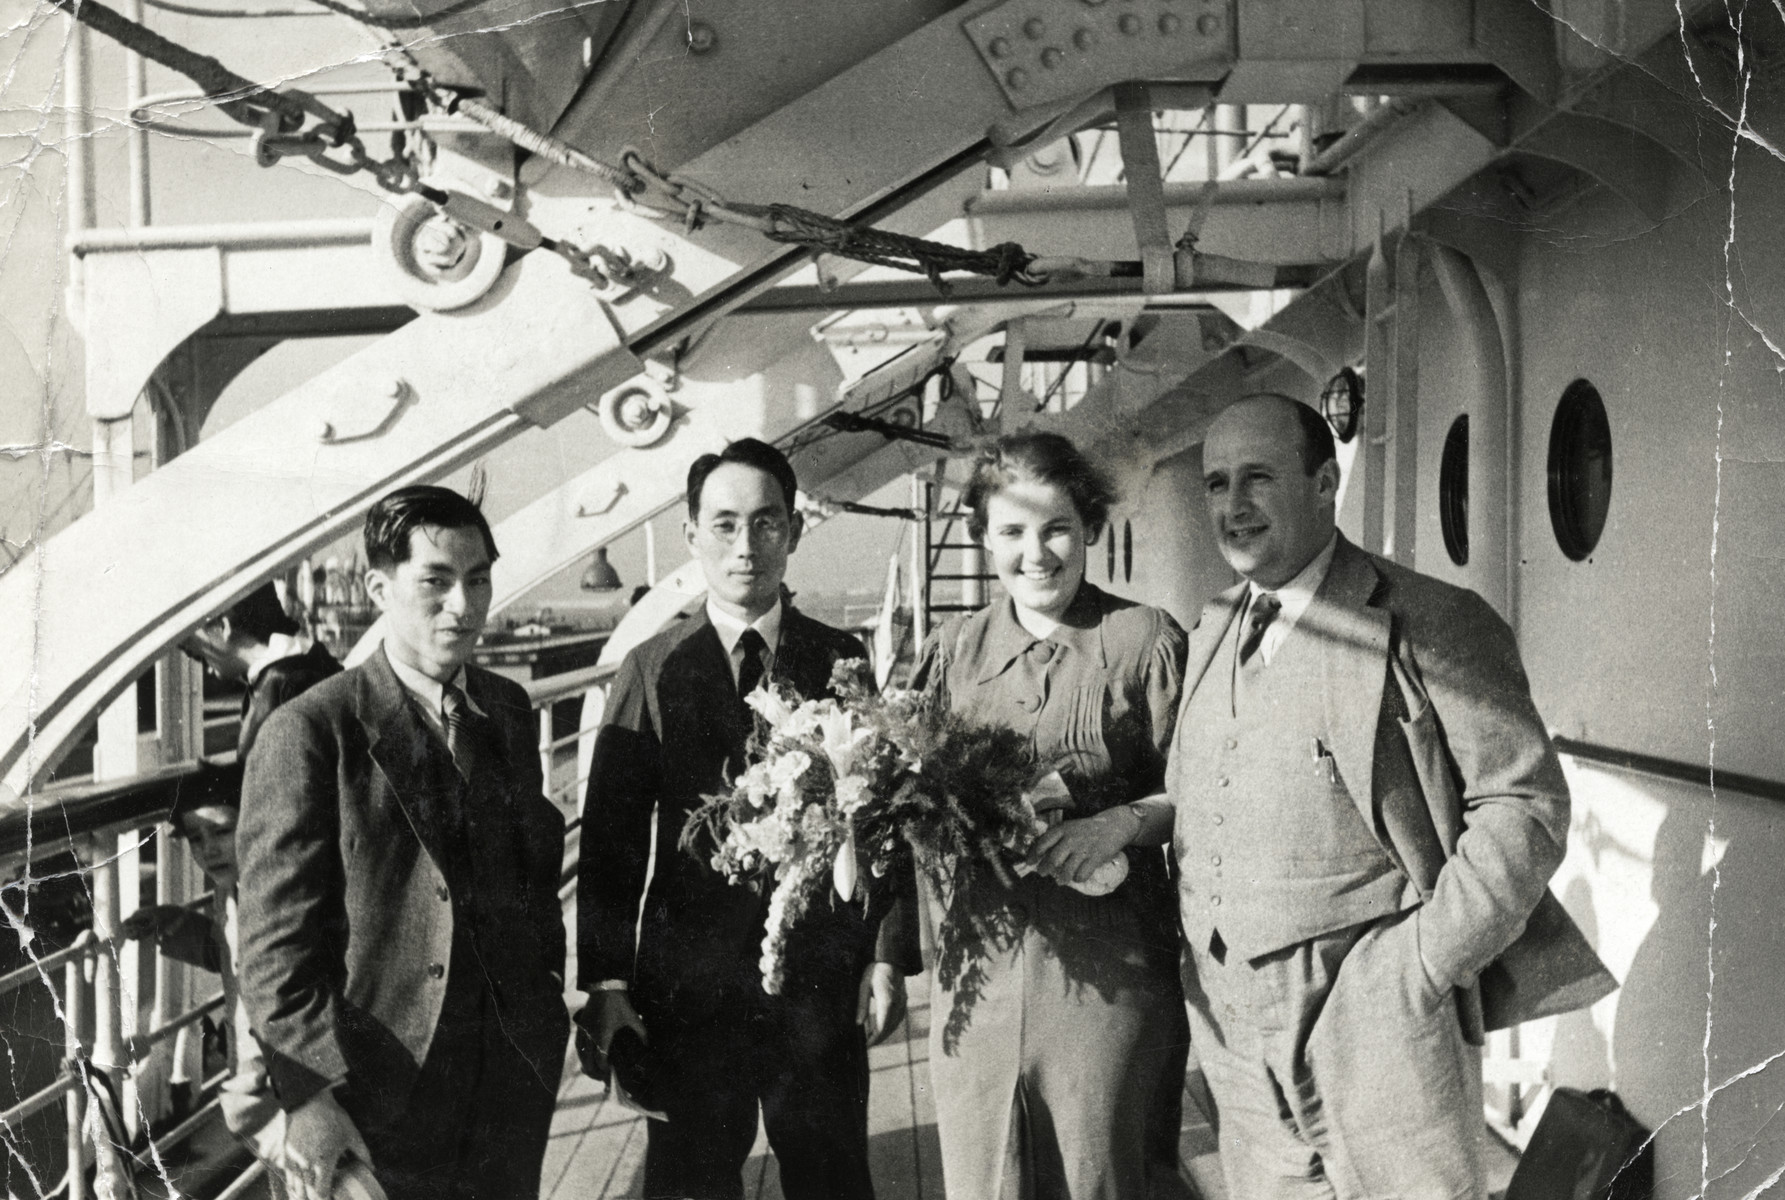 Felix and Eva Tikotin take leave of two Japanese friends after a trip to purchase artwork.